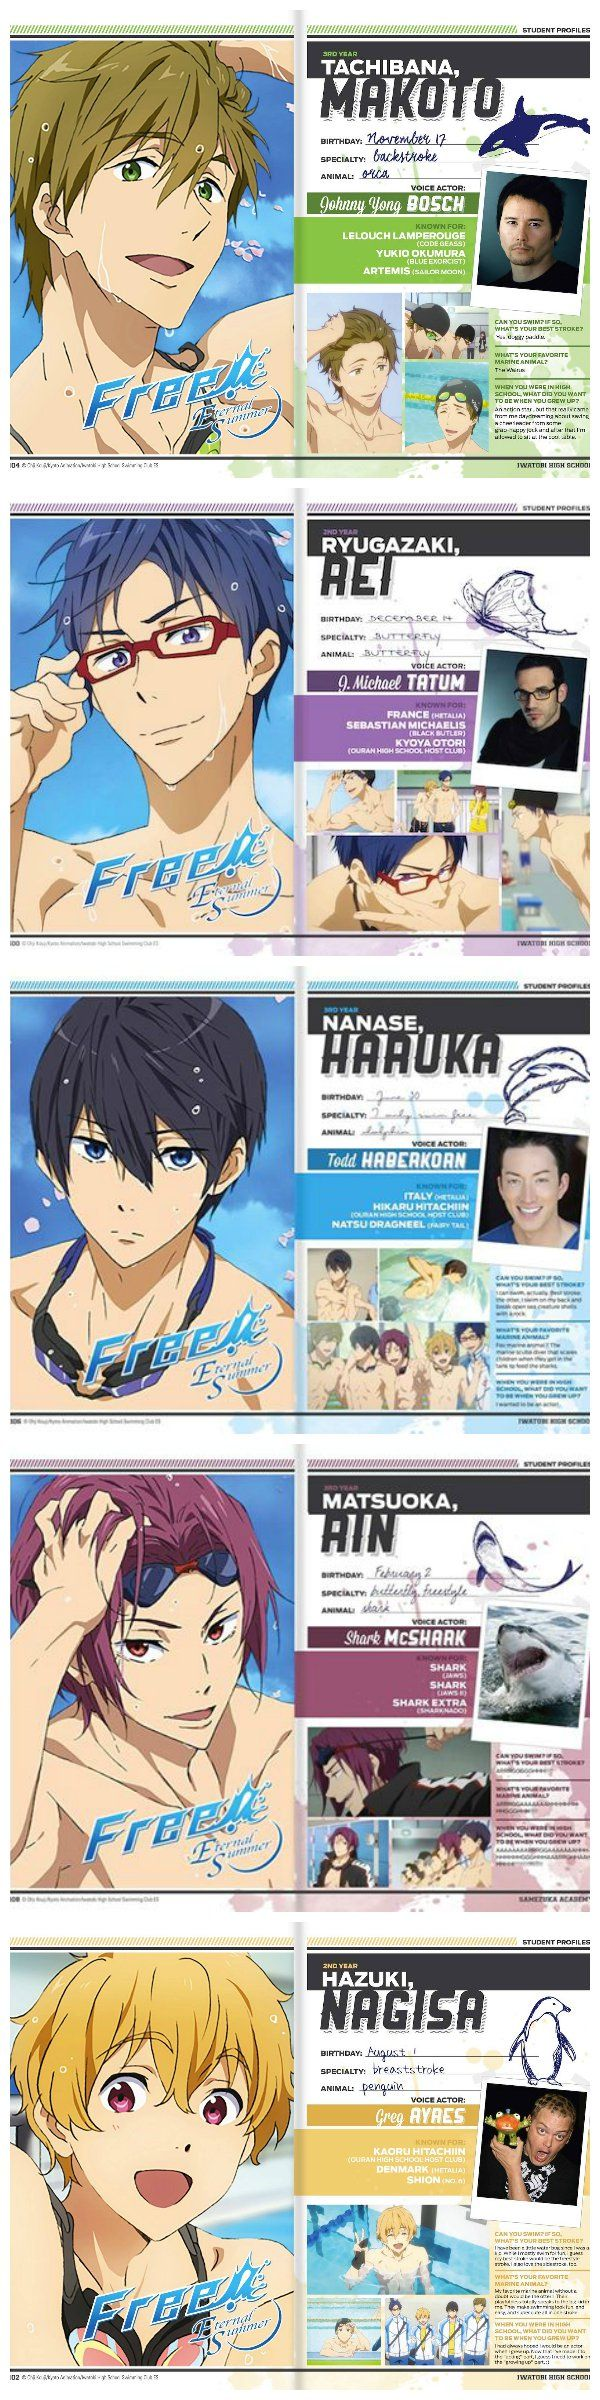 This is the free english dubbed cast im so excited and the voice actor for rin is supposed to be vic mignogna